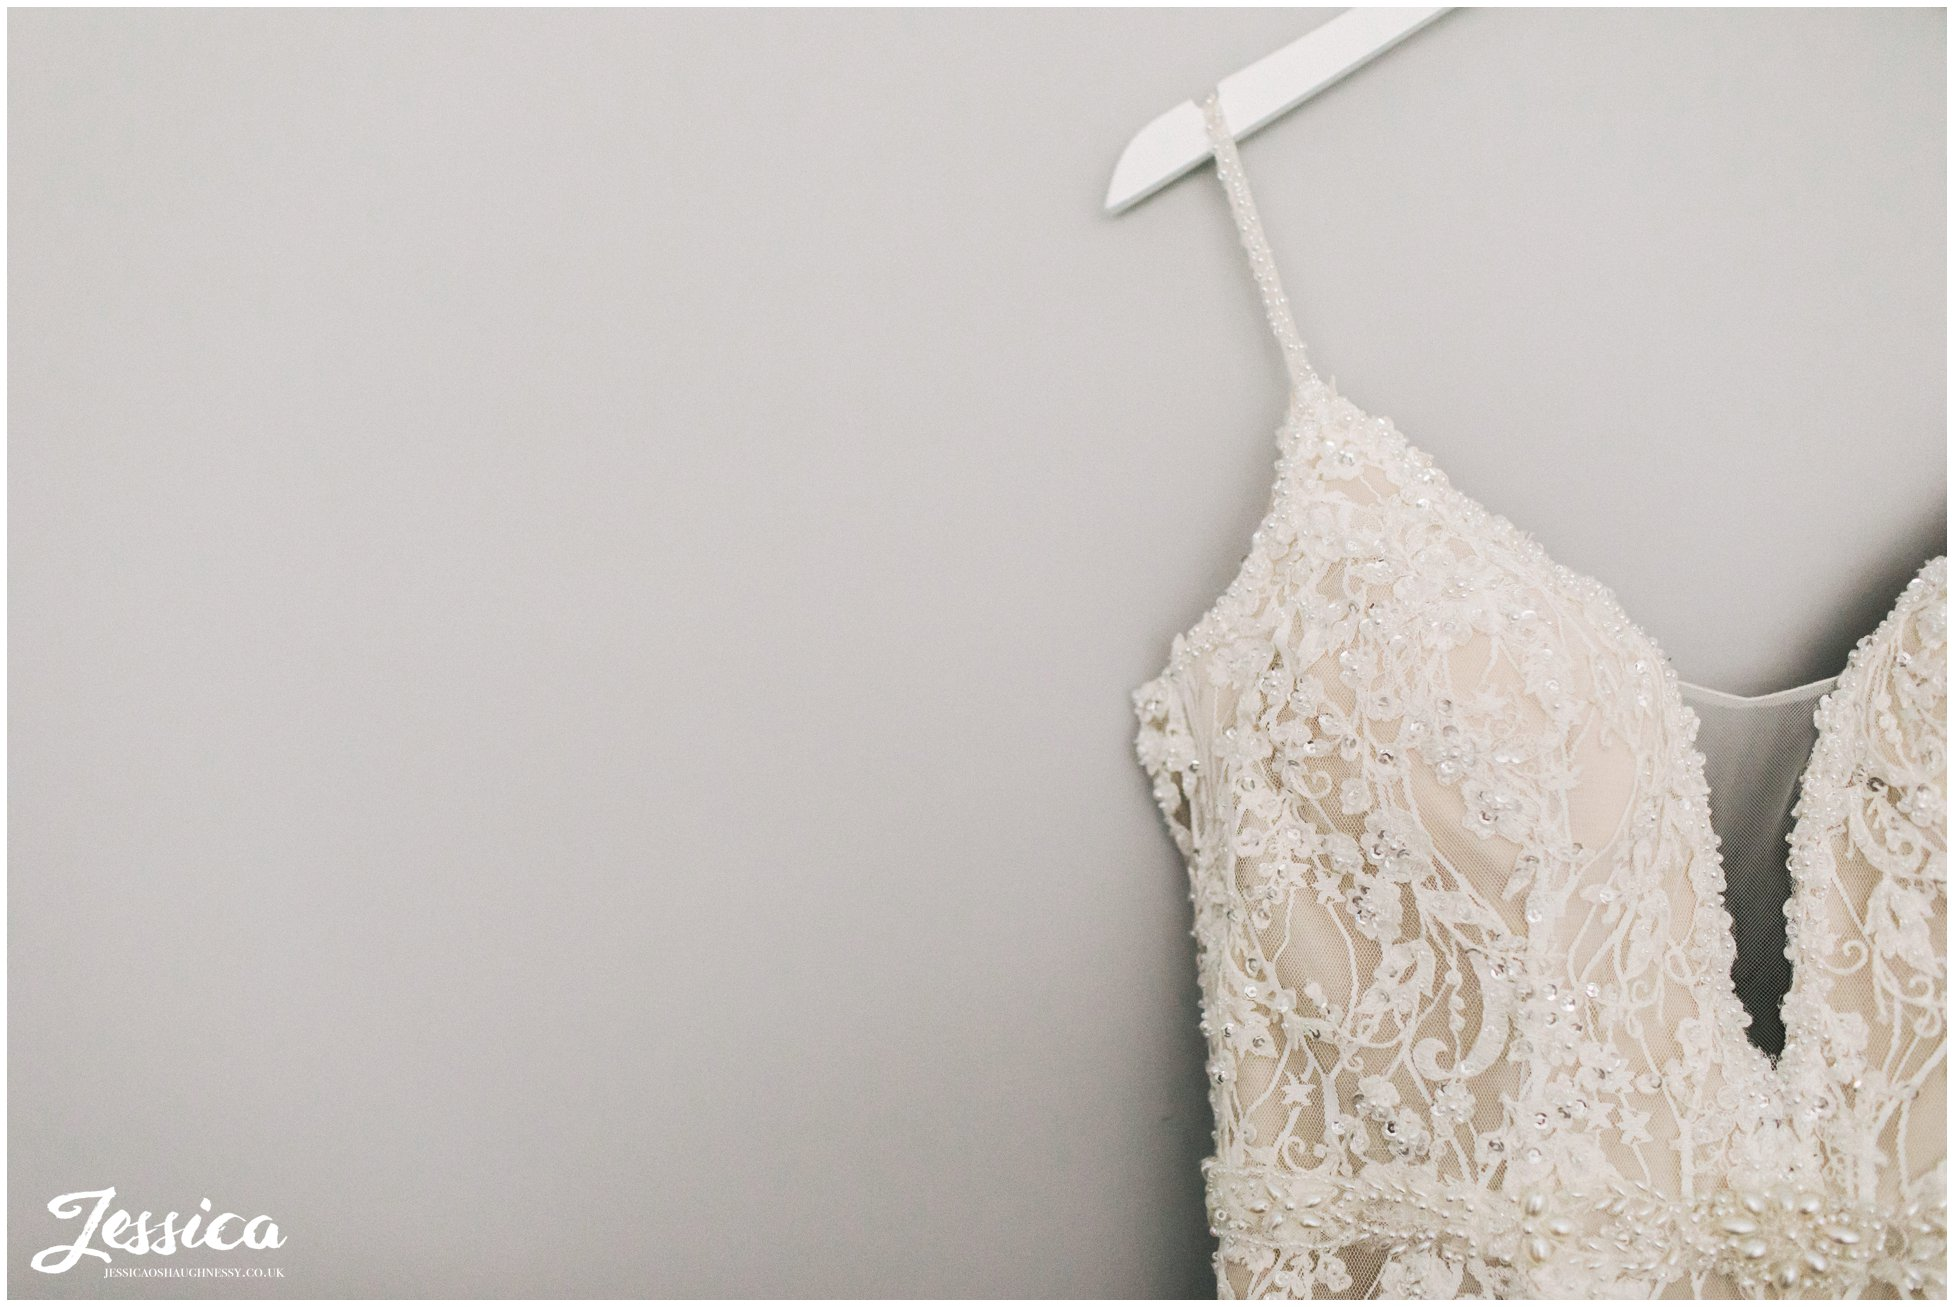 wedding dress hangs ready for the bride